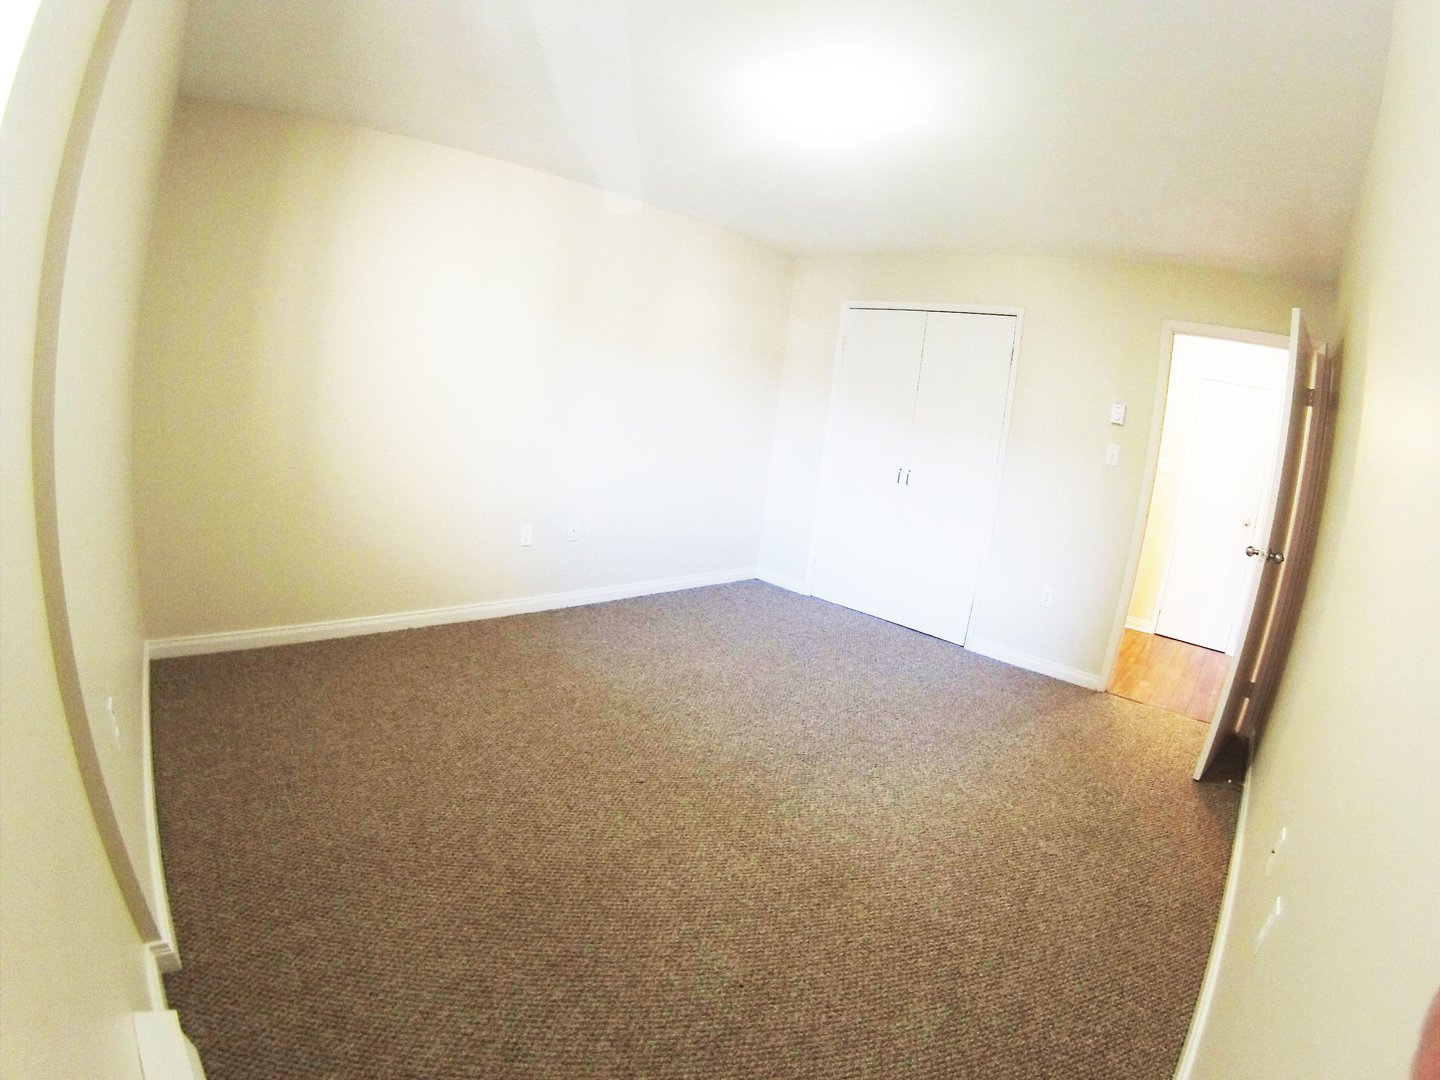 Apartment for rent at 96 Highfield Park Drive B, Dartmouth, NS. This is the empty room with vaulted ceiling, natural light and carpet.